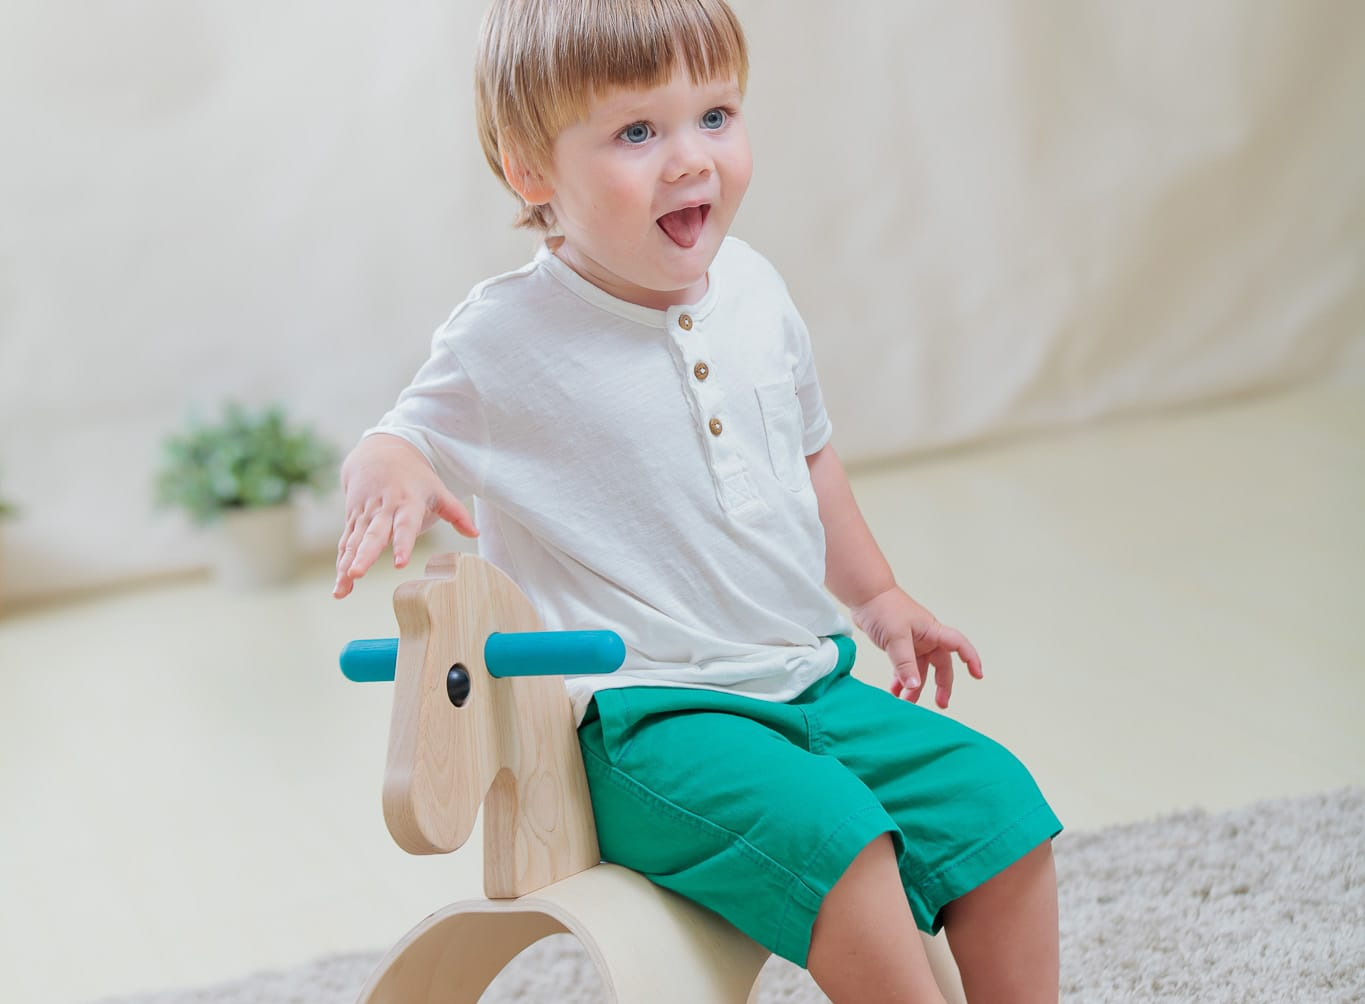 3403_PlanToys_PALOMINO_Active_Play_Gross_Motor_Coordination_Imagination_Language_and_Communications_2yrs_Wooden_toys_Education_toys_Safety_Toys_Non-toxic_7.jpg